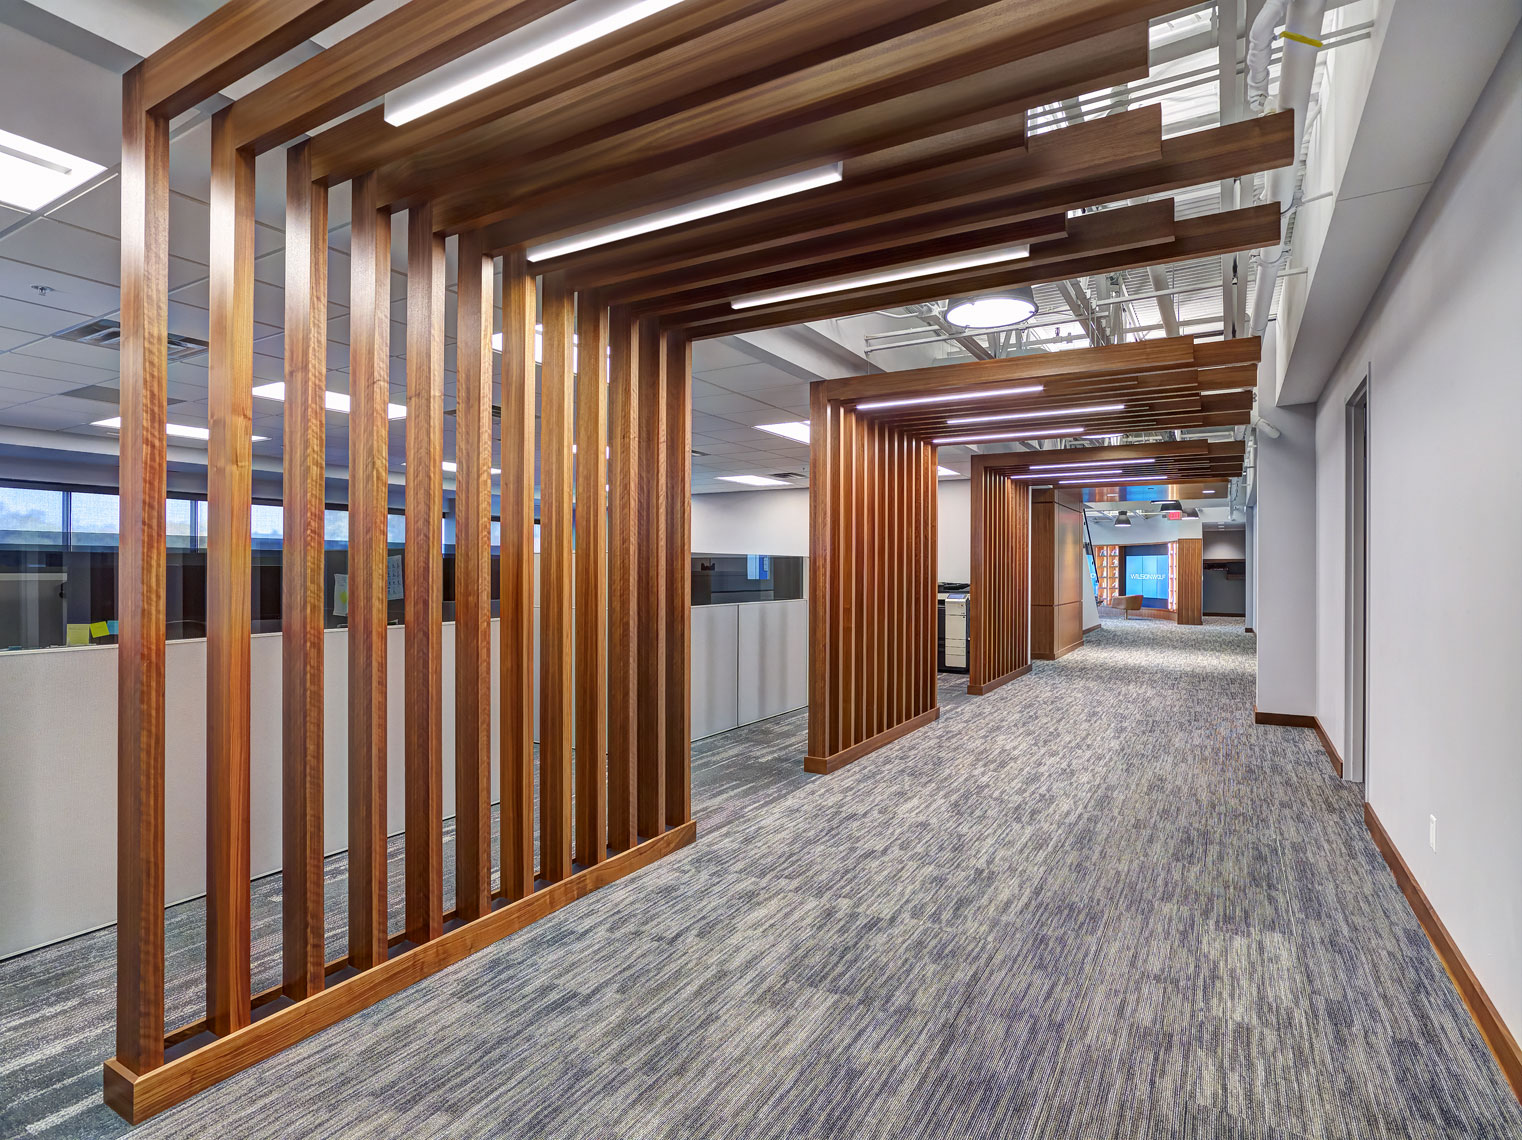 Wilson Wolf/office hall/wooden accents/architectural photography